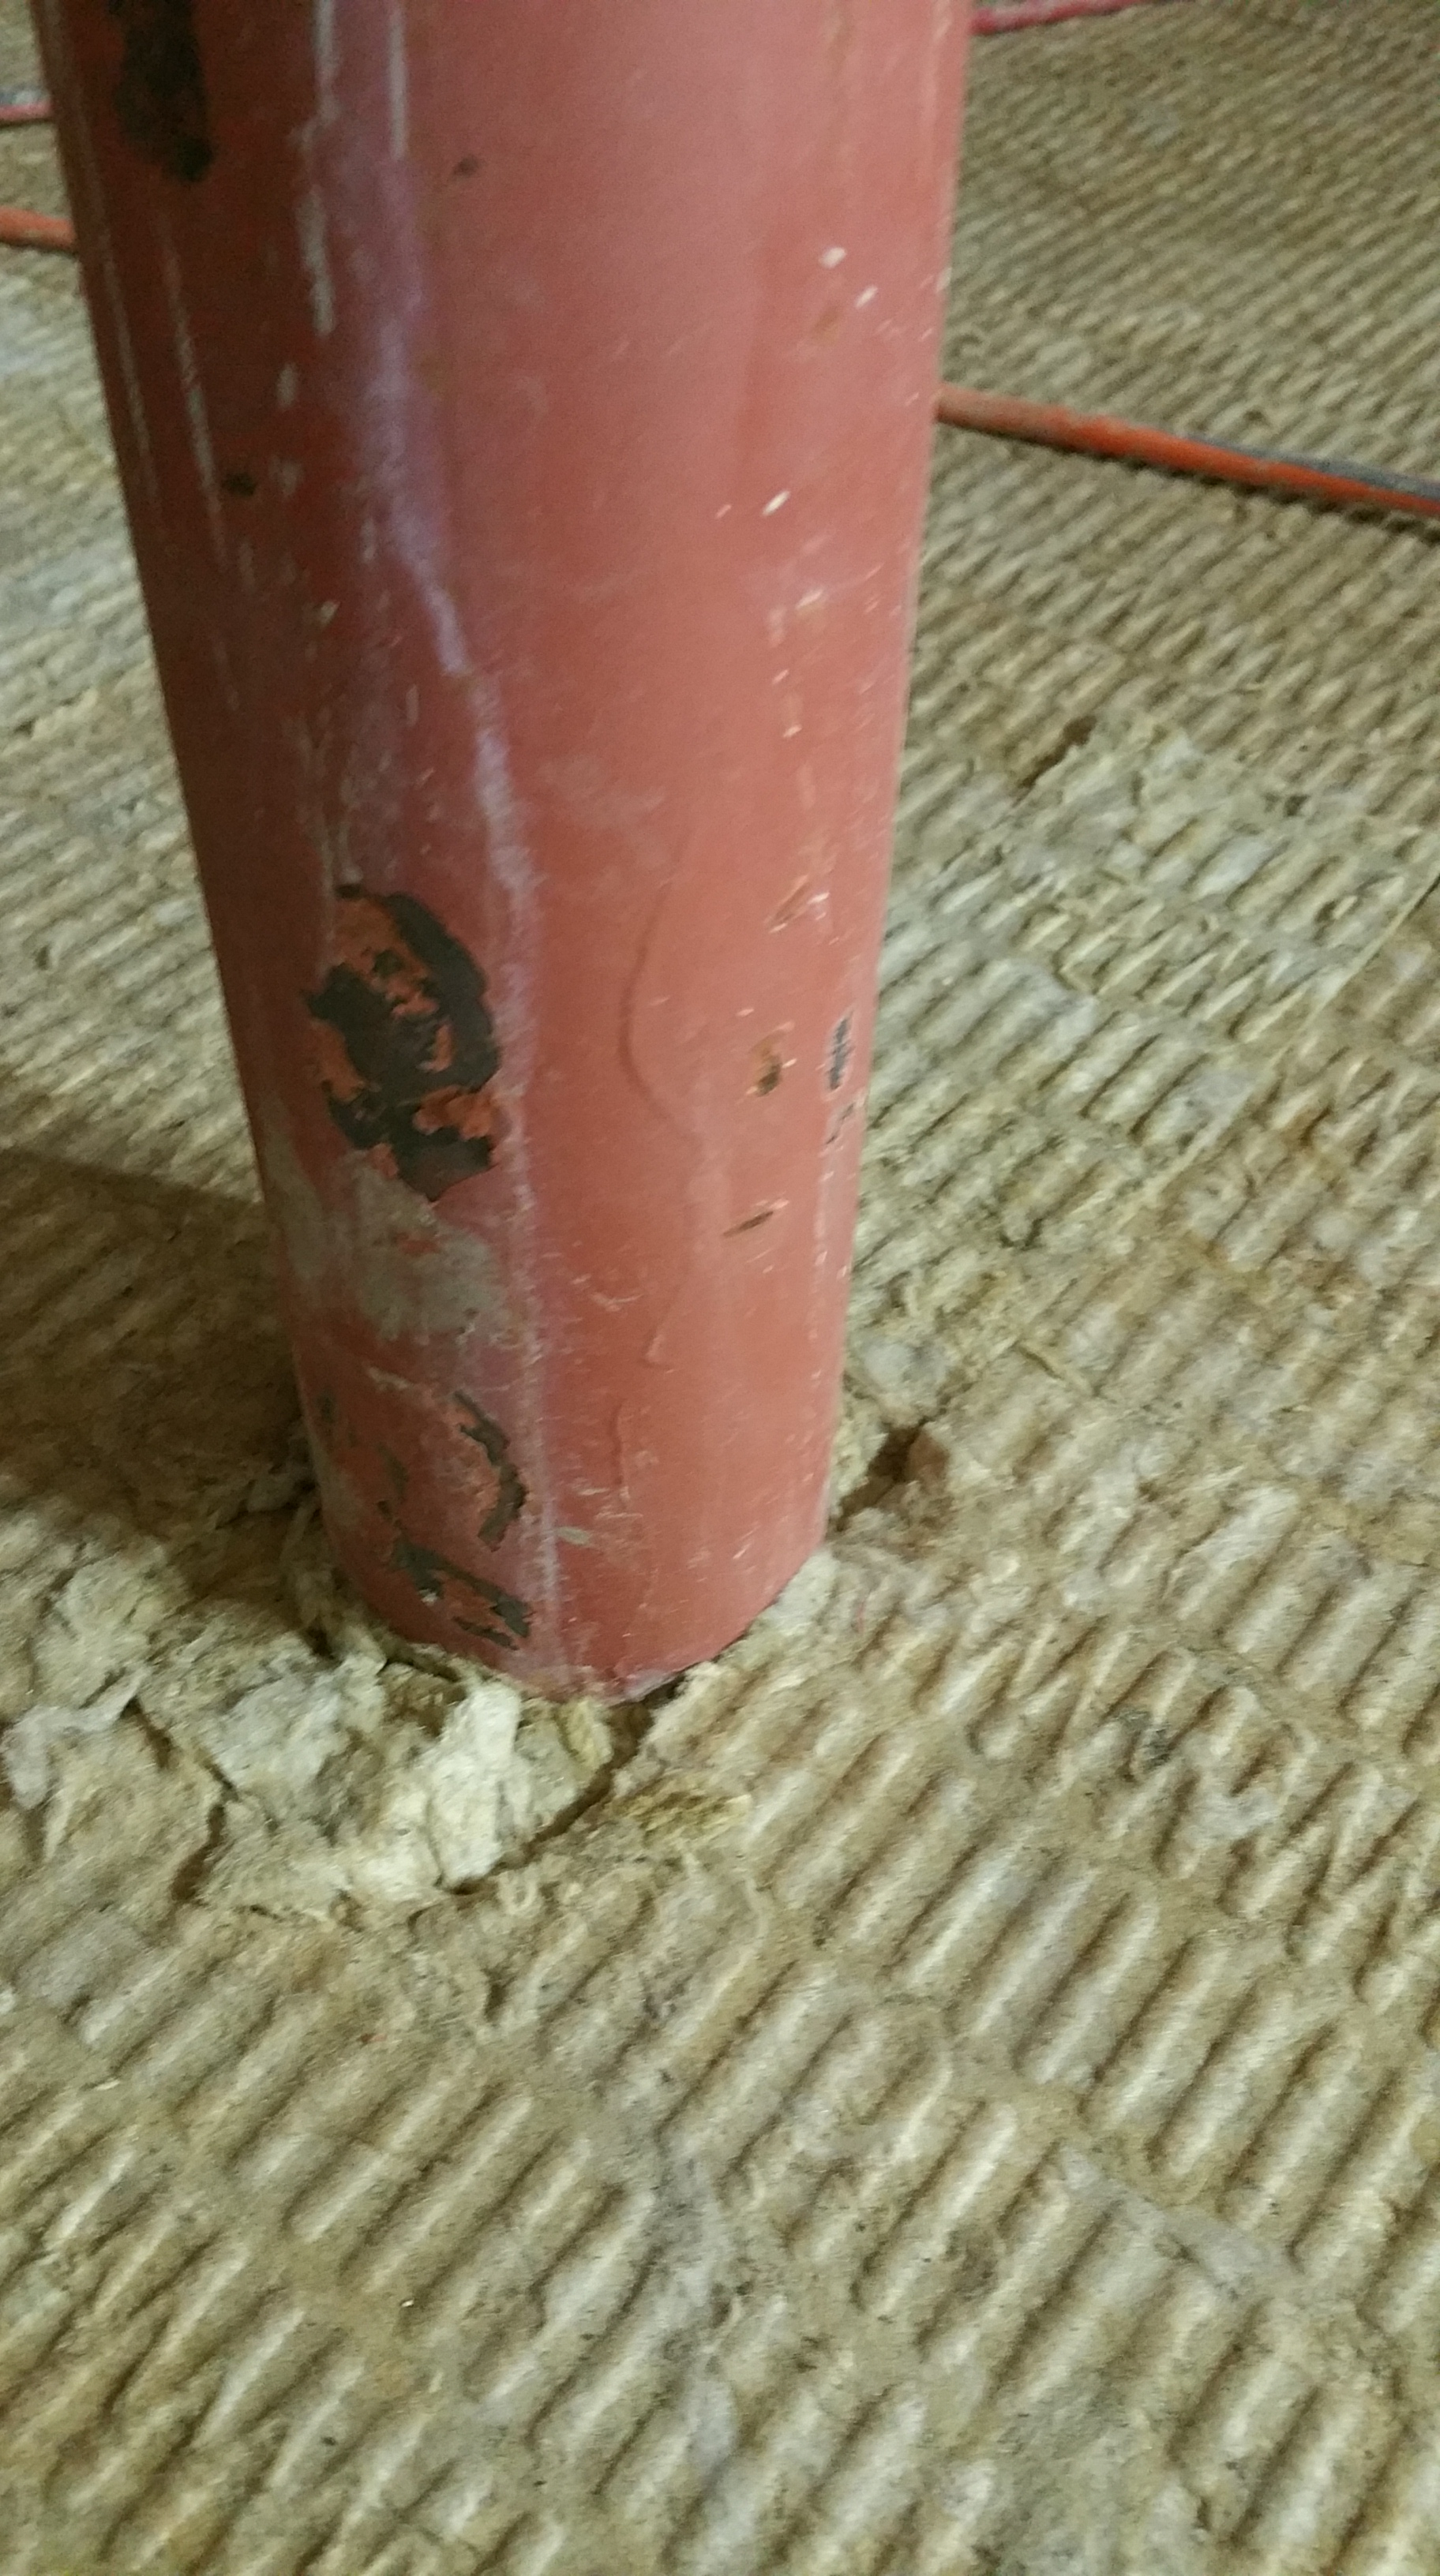 roxul stuffed in around basement pole